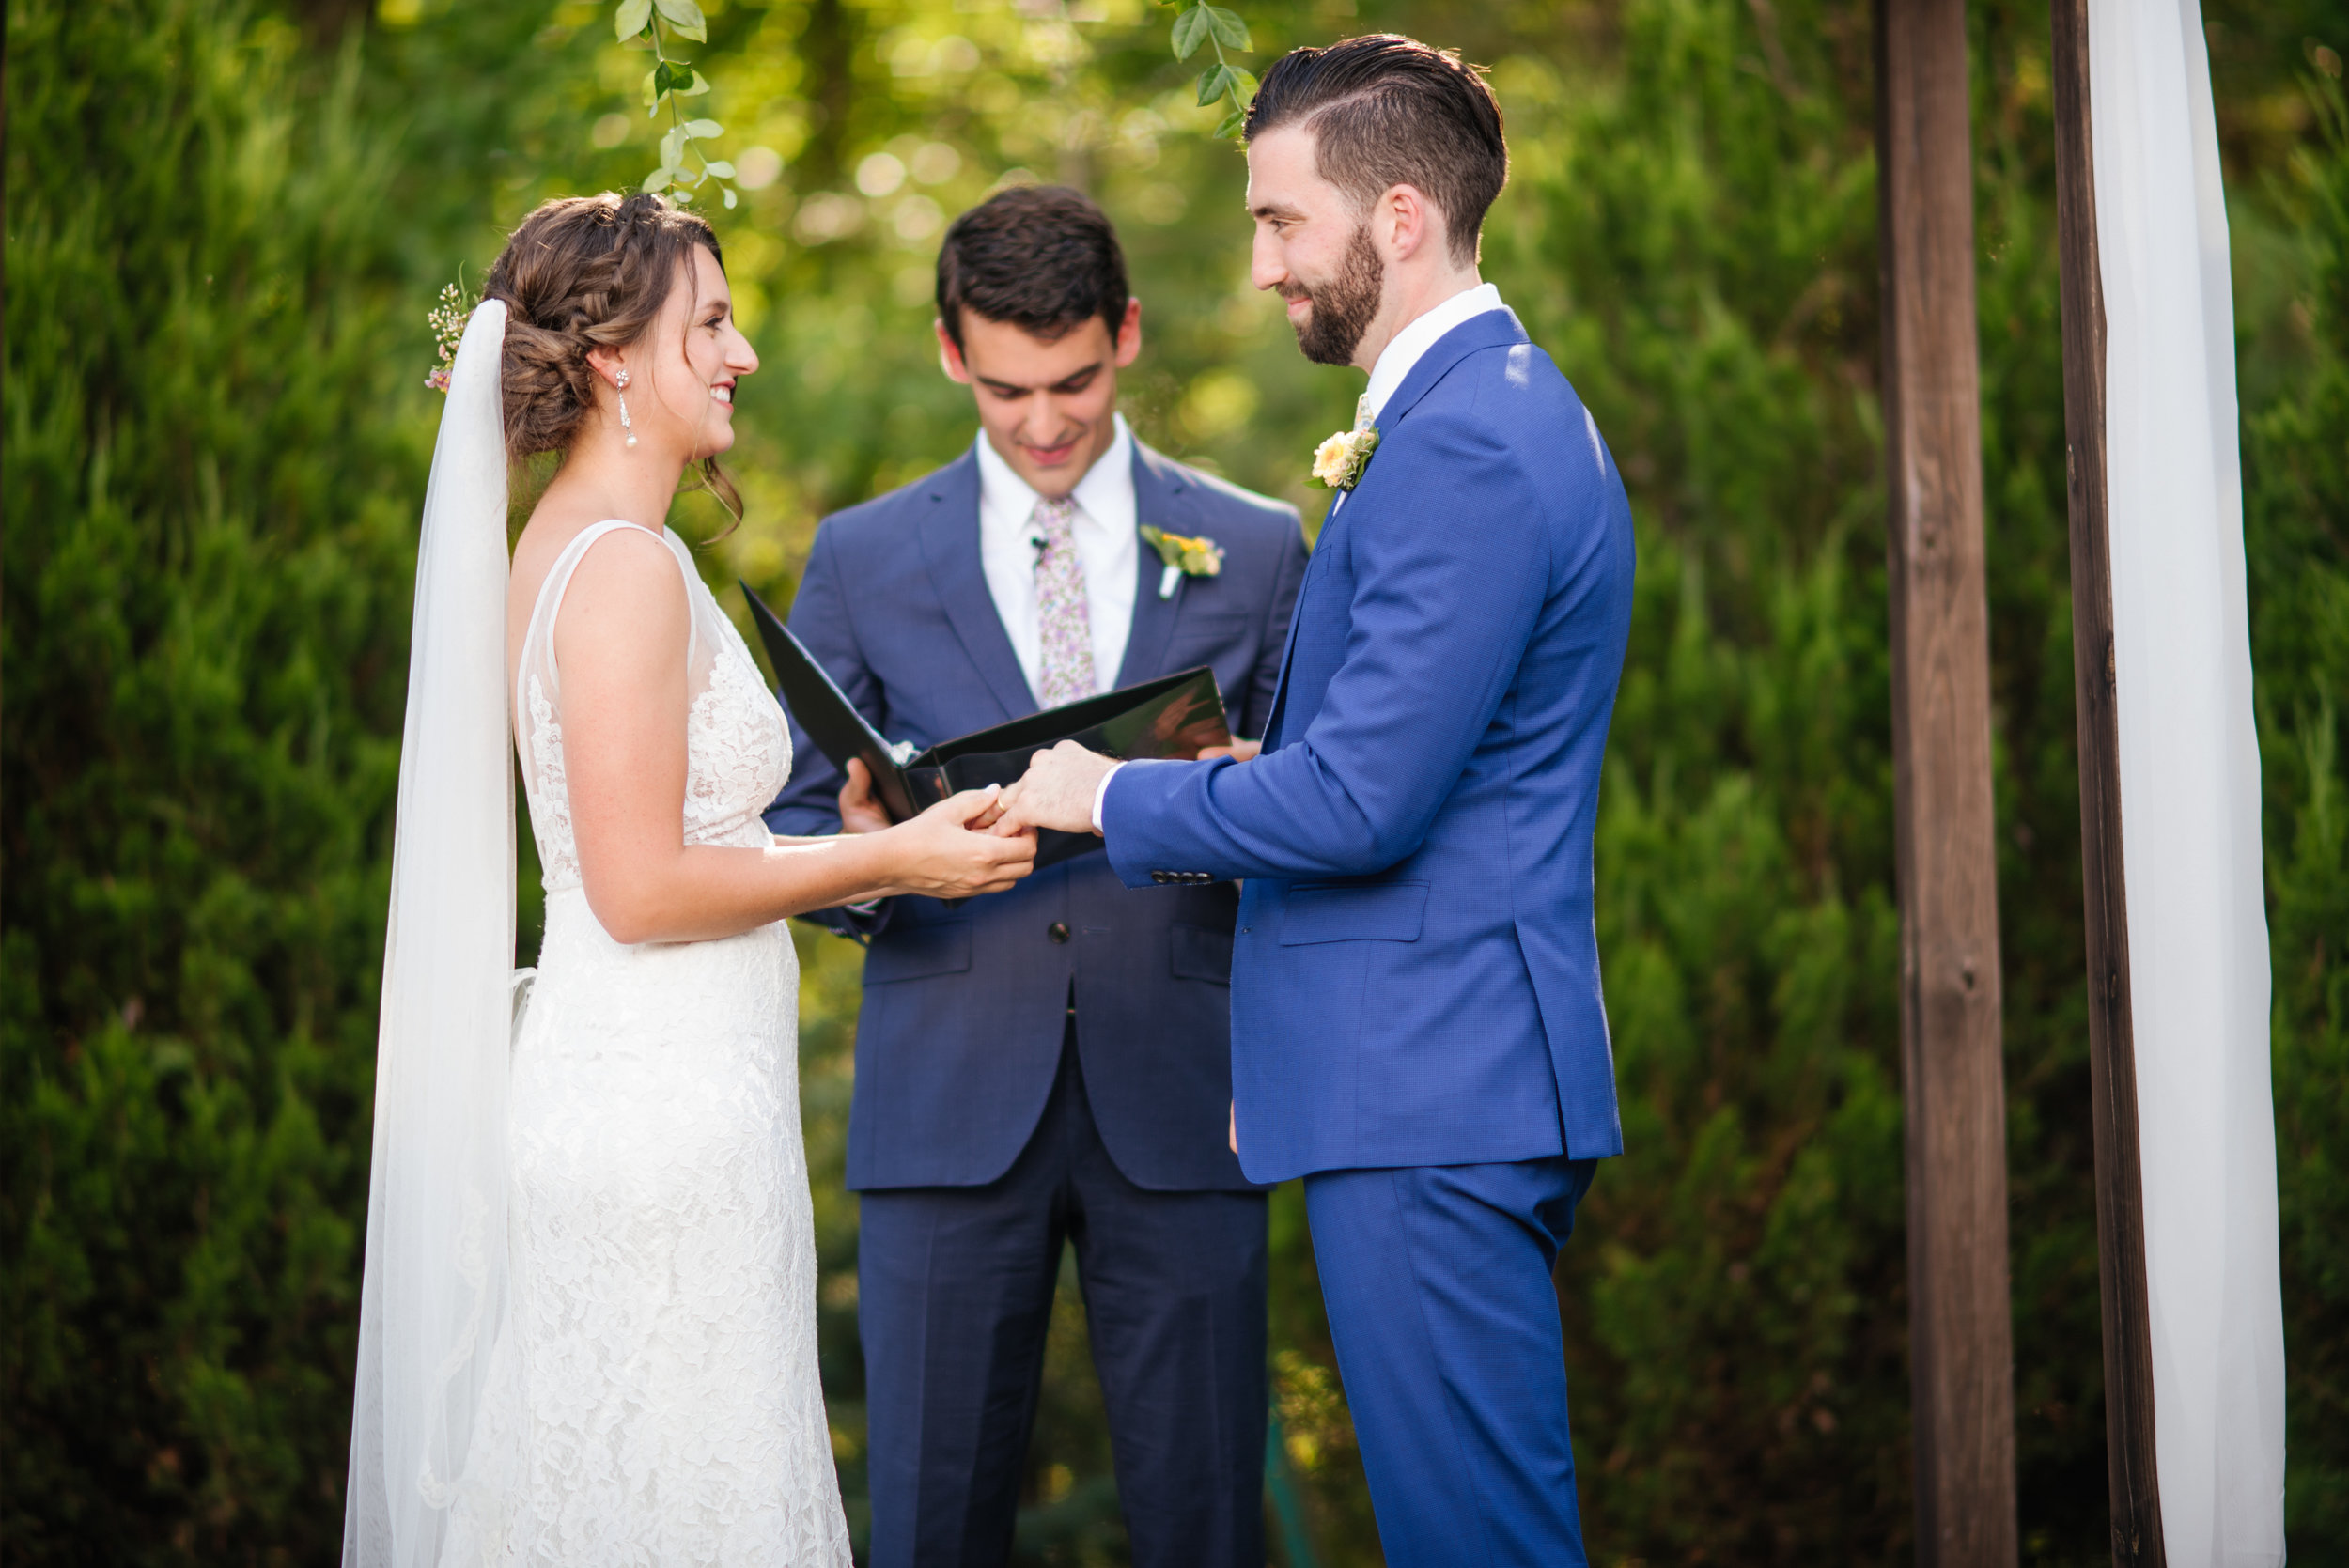 36-2019-Wedding-select-web.jpg